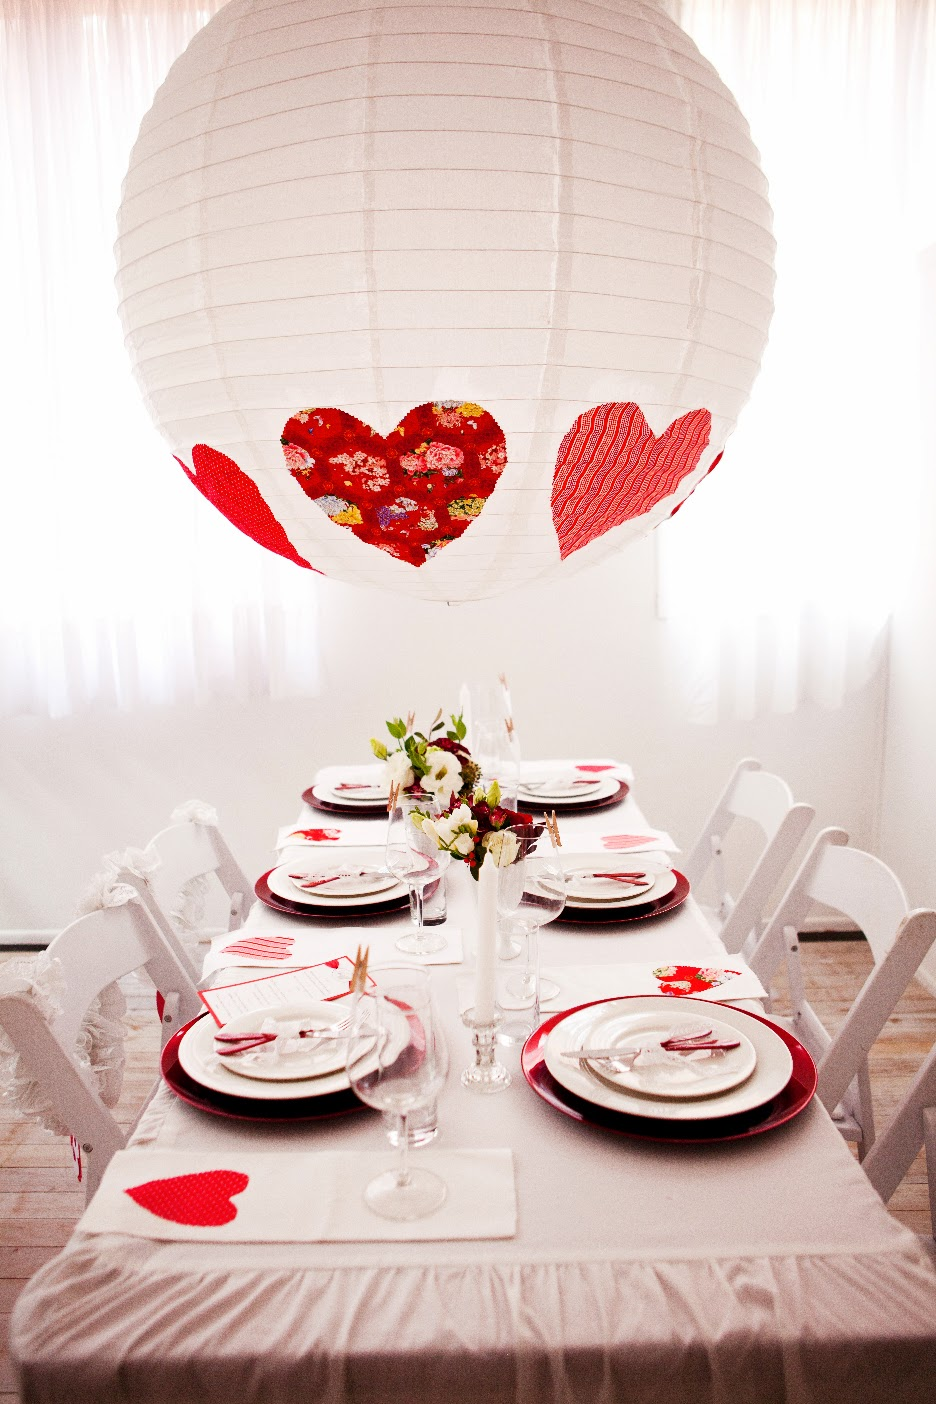 Suggestions for a Heart Wedding Theme